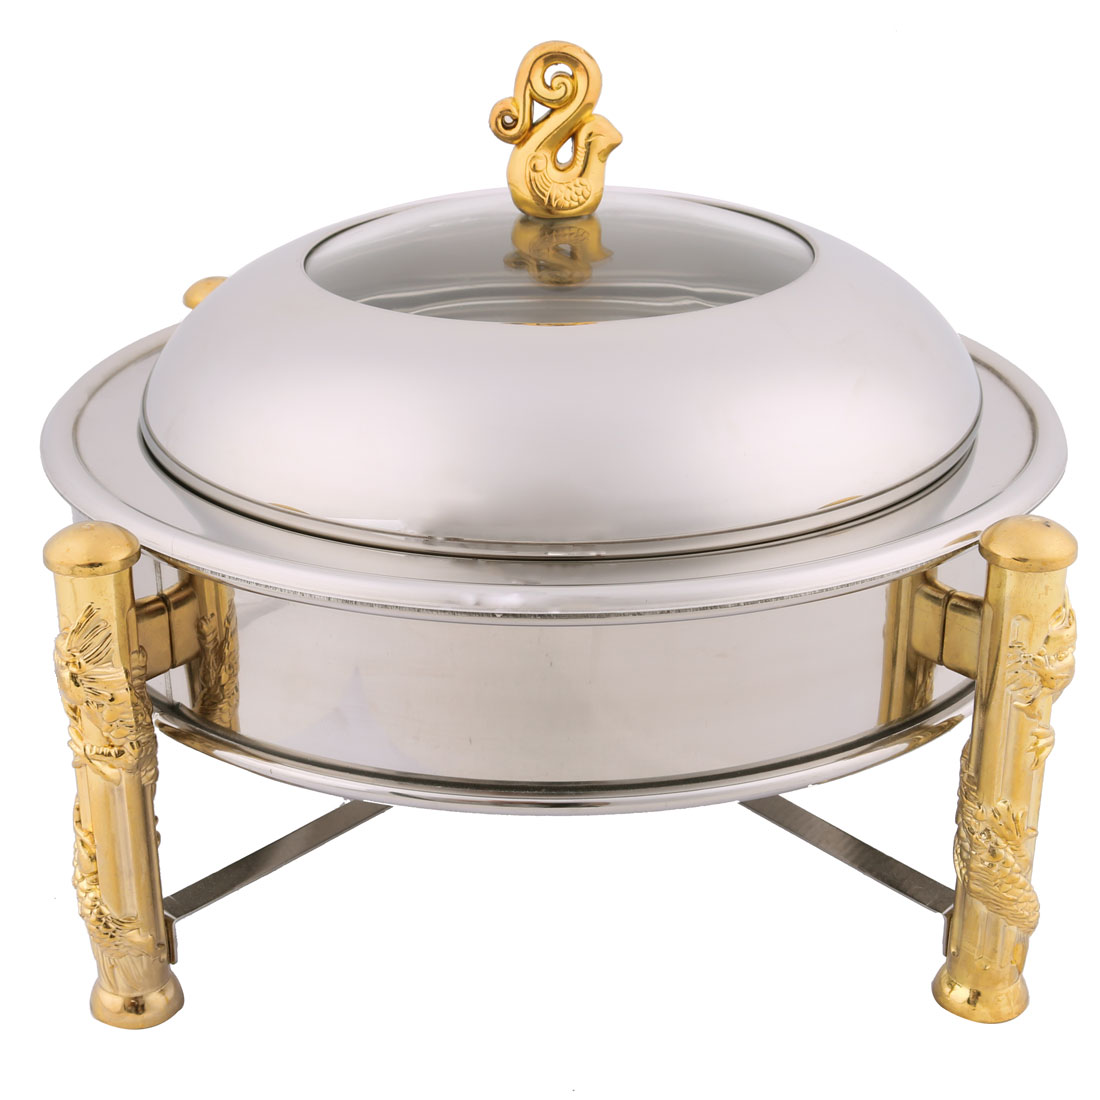 Picnic Kitchen Metal Round Cookware Dish Food Chafer Set Silver Tone 24cm Dia